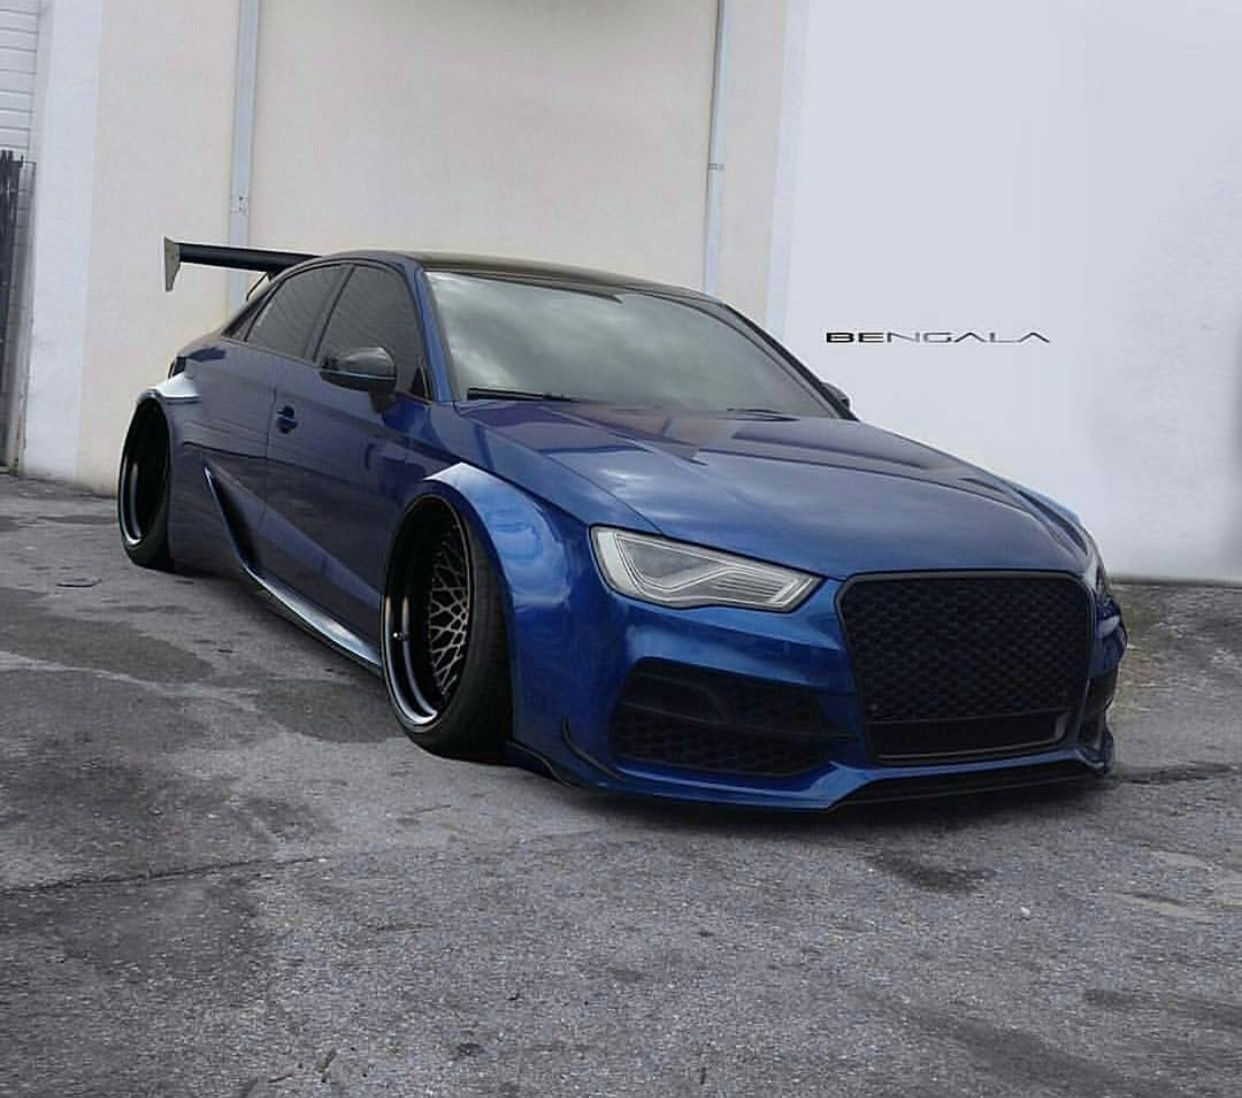 Pin by Luis on Audi Tuner cars, Cars, Audi cars